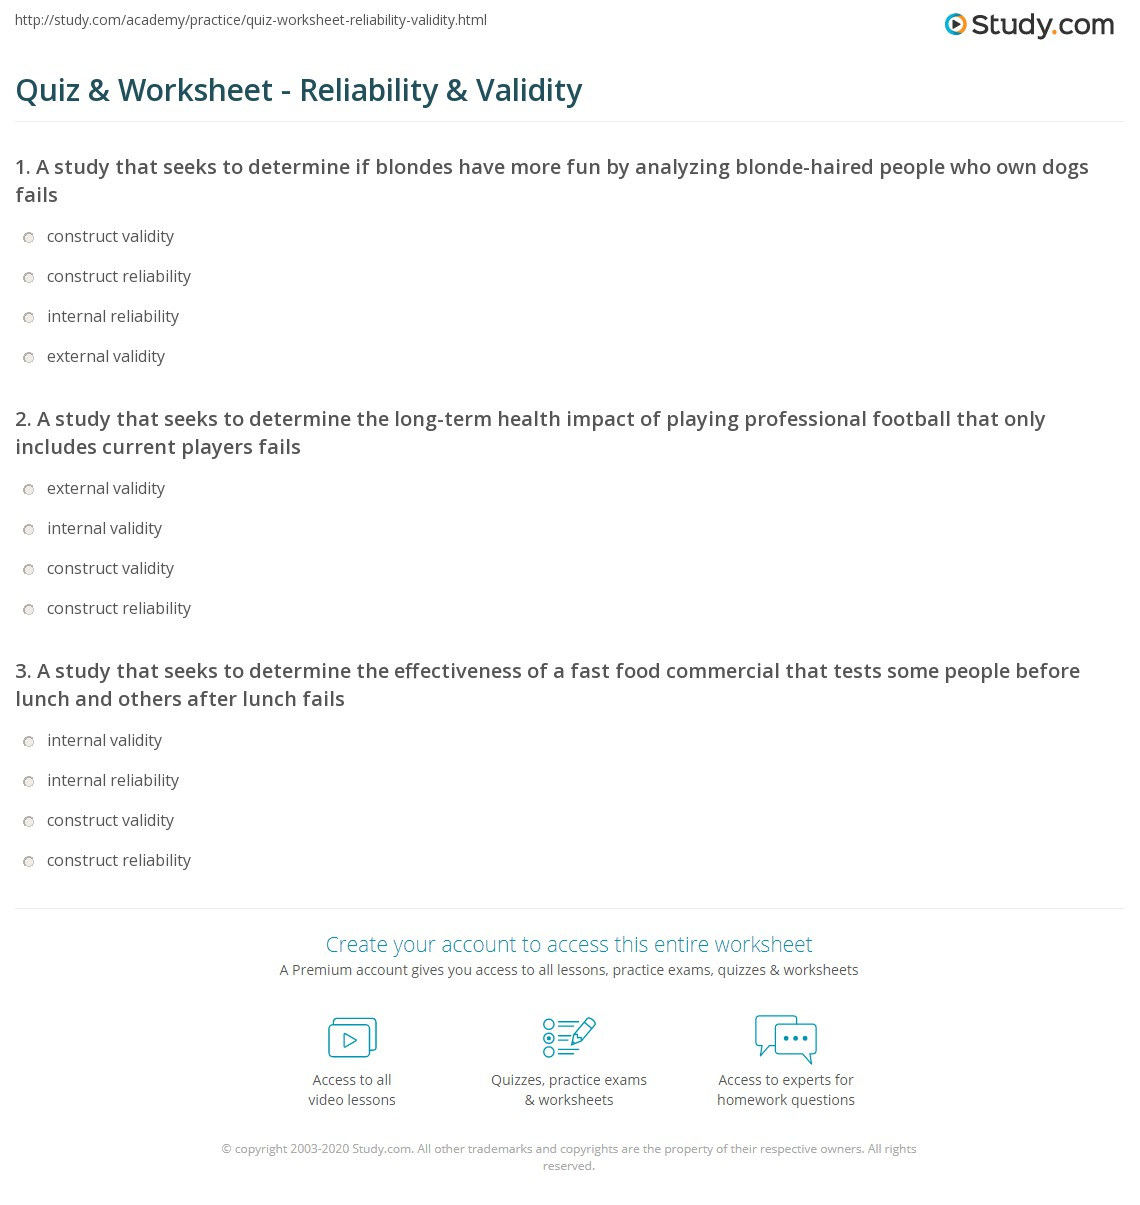 validity and reliability worksheet Psych 655 week 2 individual assignment validity and reliability worksheet resources: reliability and validity worksheet a valid instrument is one that measures what it says it measures.